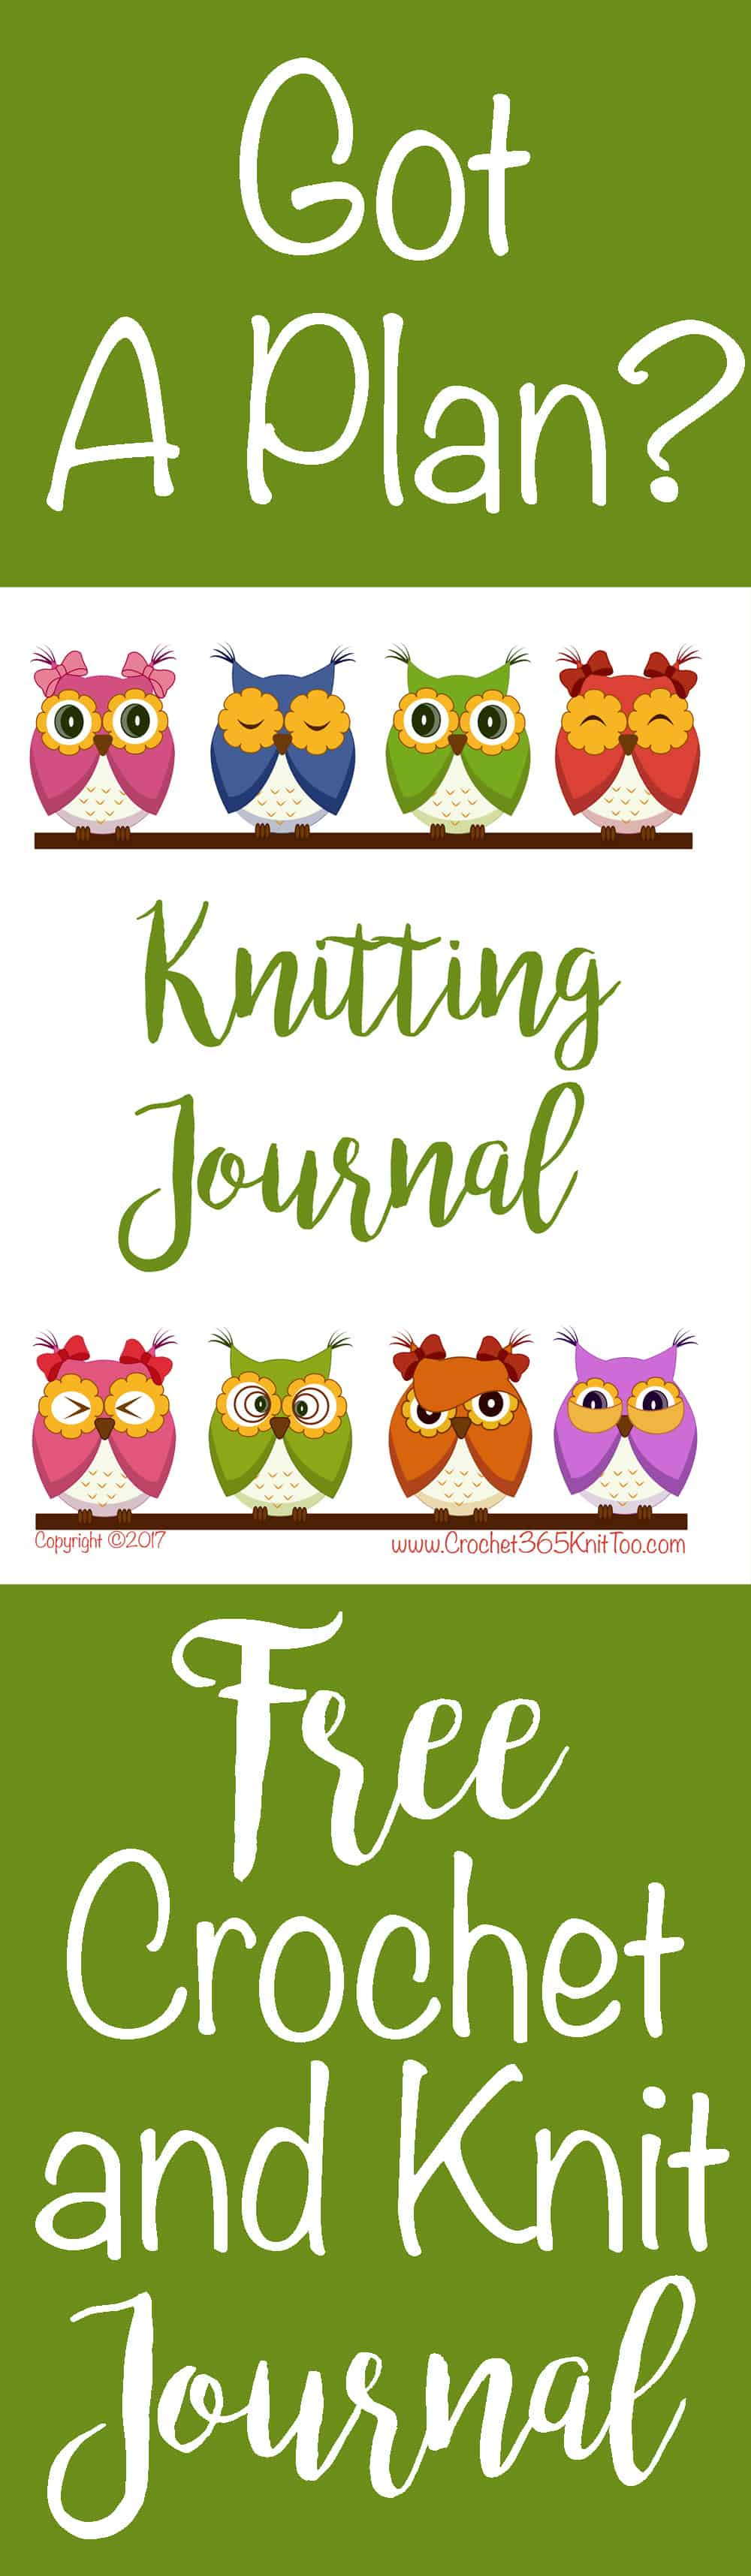 crochet and knitting journal